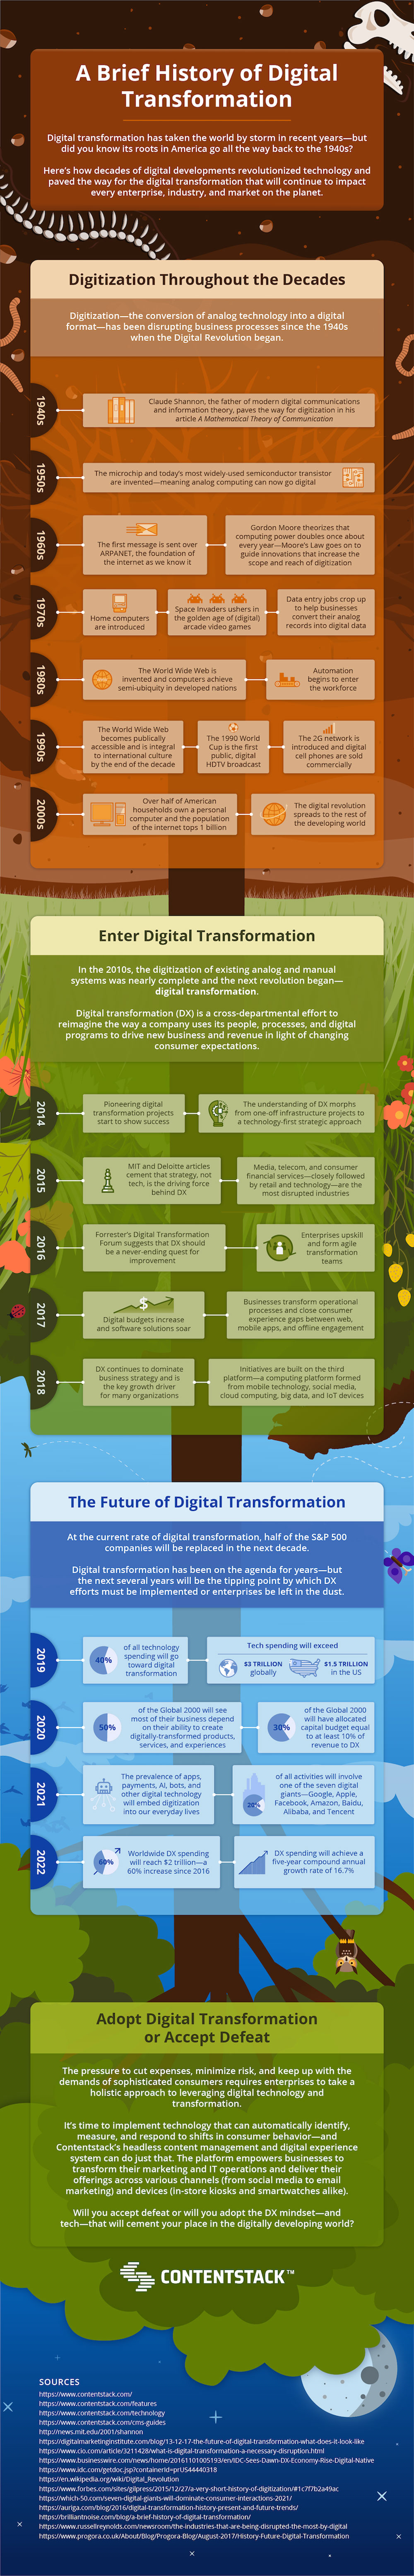 Infographic: A History of Digital Transformation